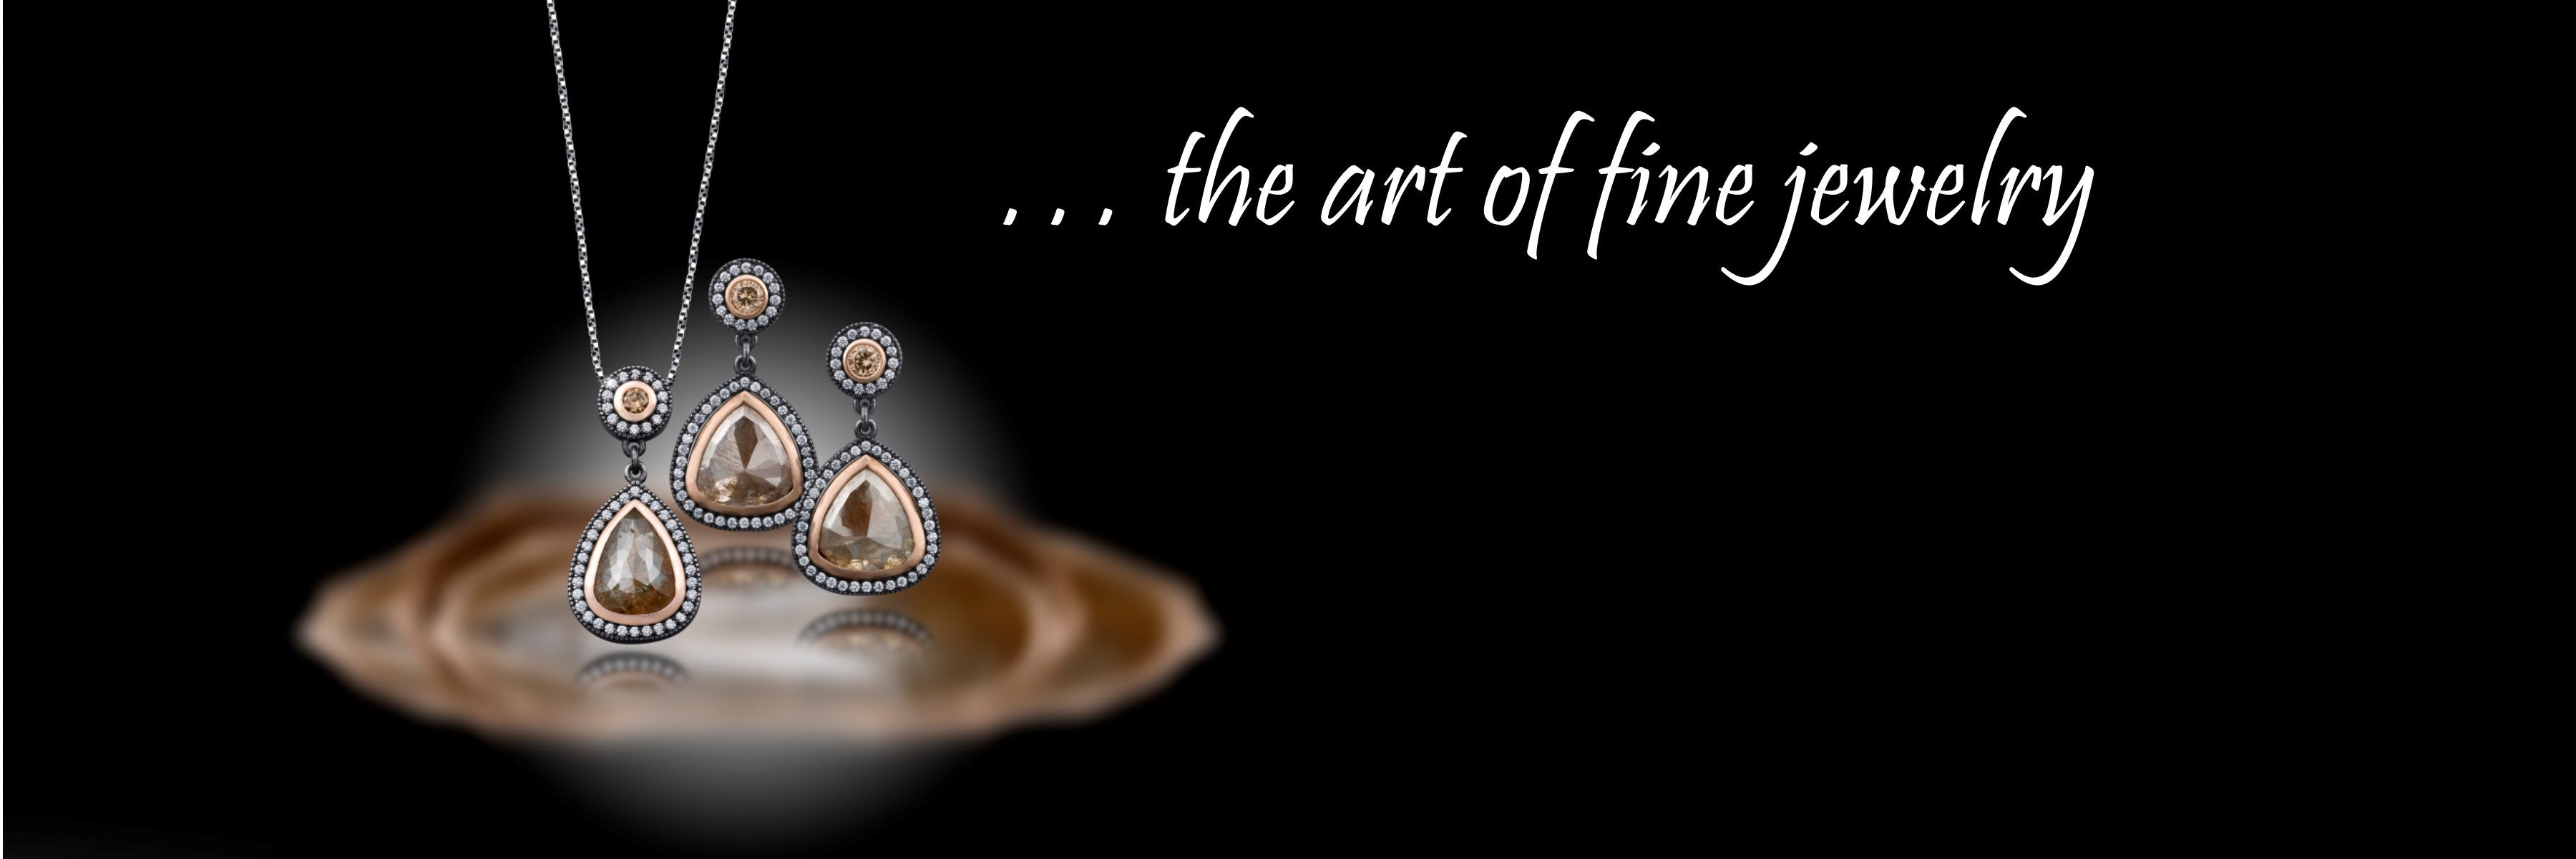 Samara Jewelry Designs    the art of fine jewelry – Samara Jewelry